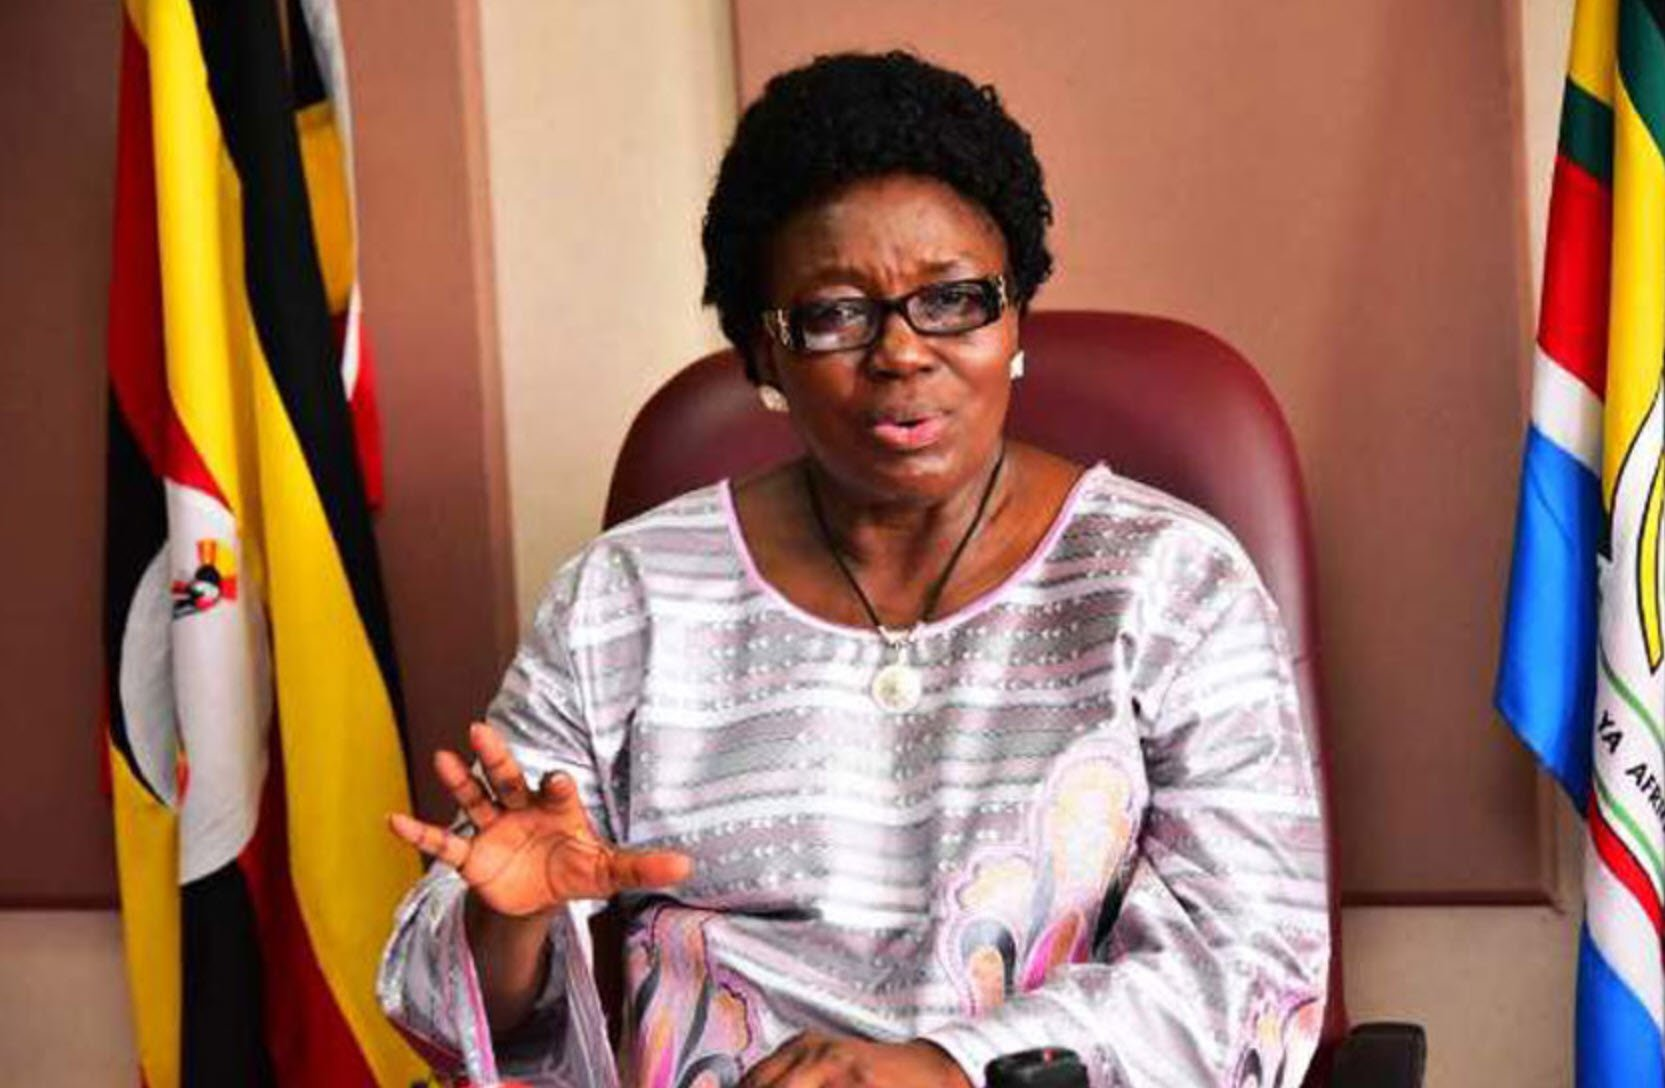 Speaker to 'fight' MTN Uganda's contract to supply free internet and